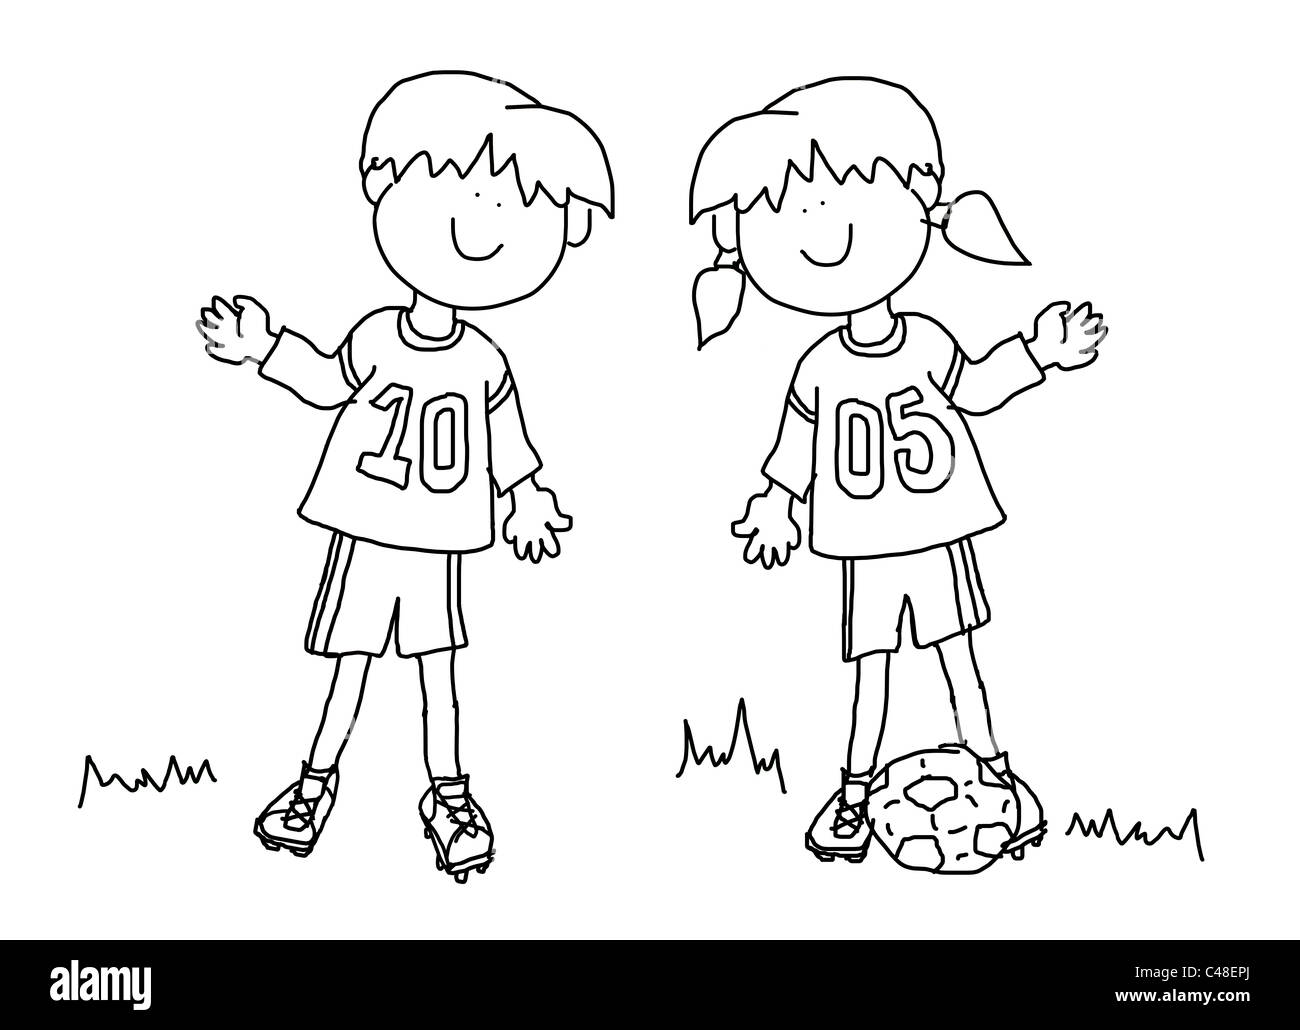 Fun Boy And Girl Cartoon Outline Playing Soccer Or